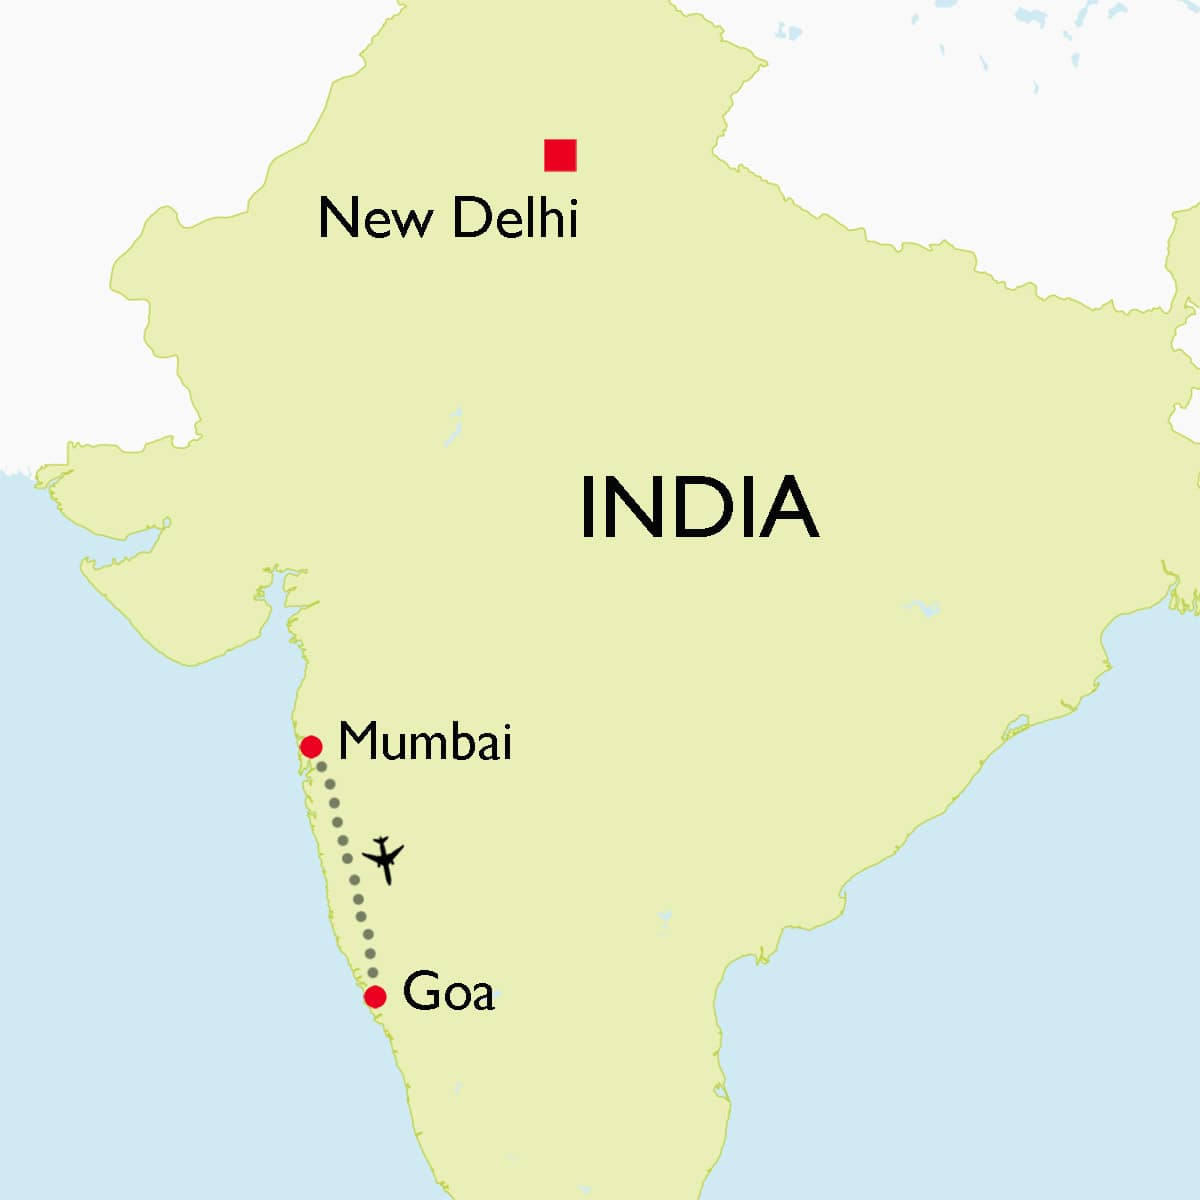 West Coast Of India: Mumbai & Goa